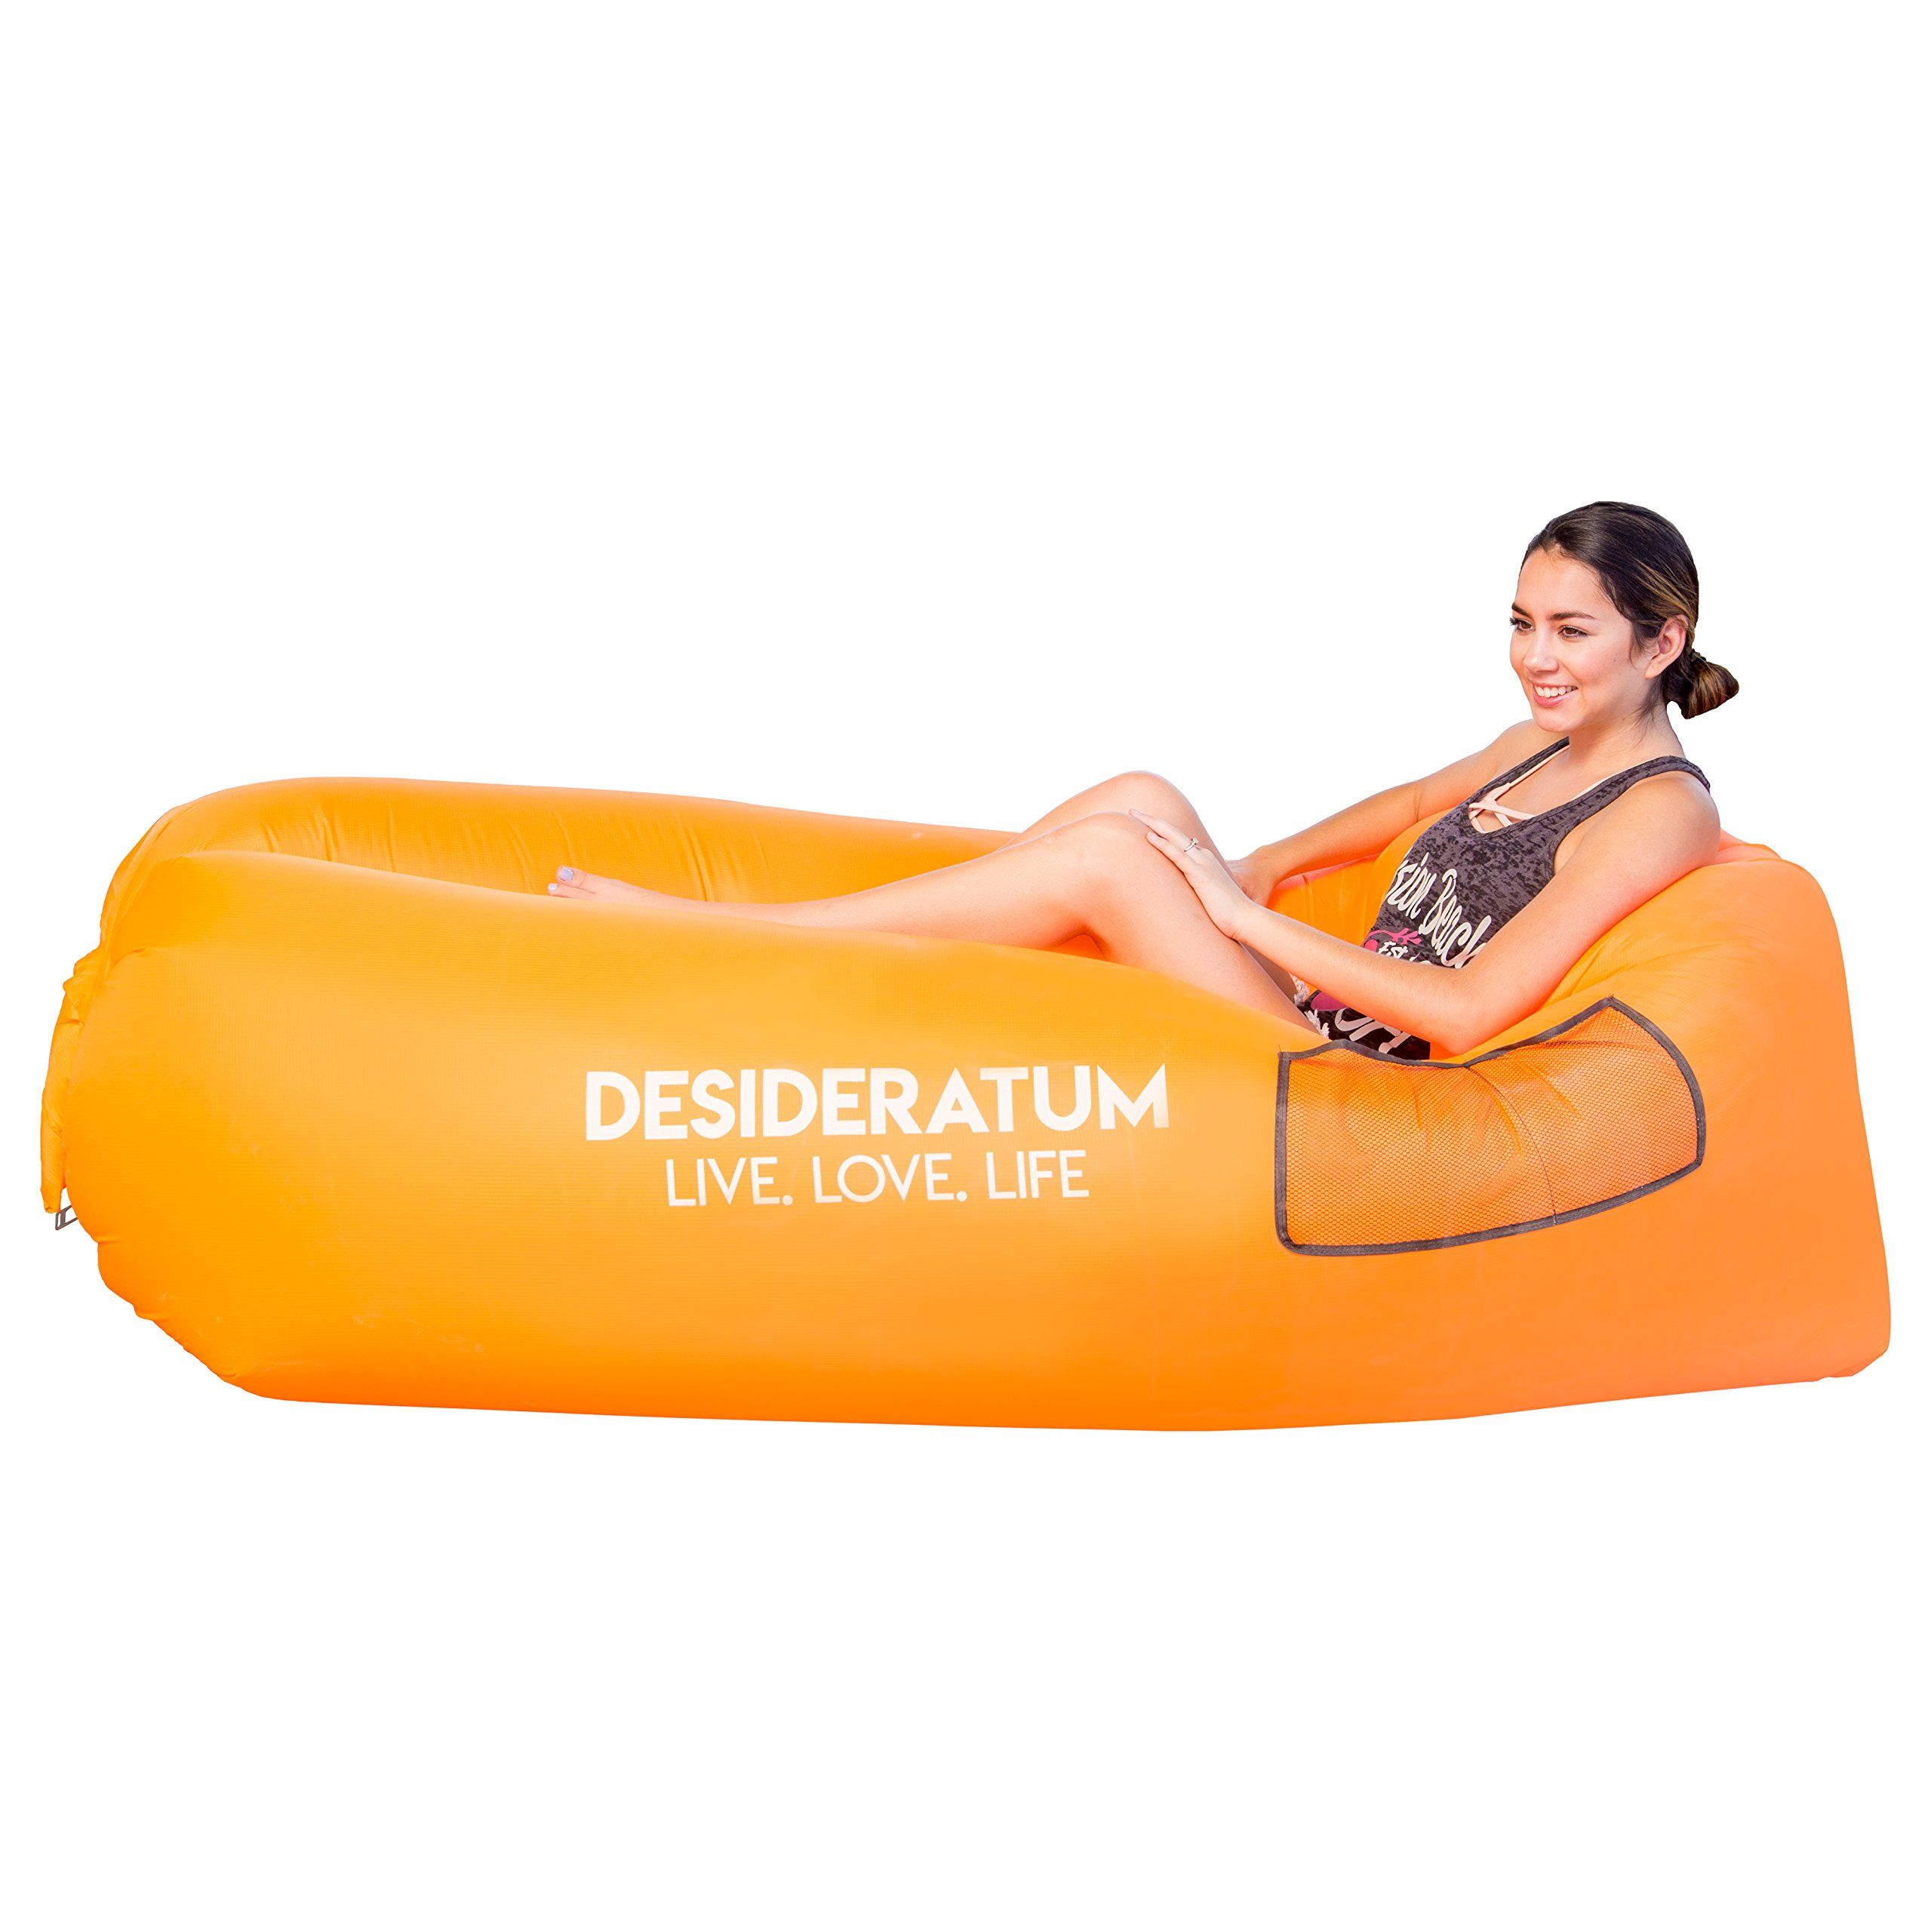 air lounger portable air bed for indoor and outdoor air hammock inflatable lounger with carry bag securing stake and bottle opener for traveling